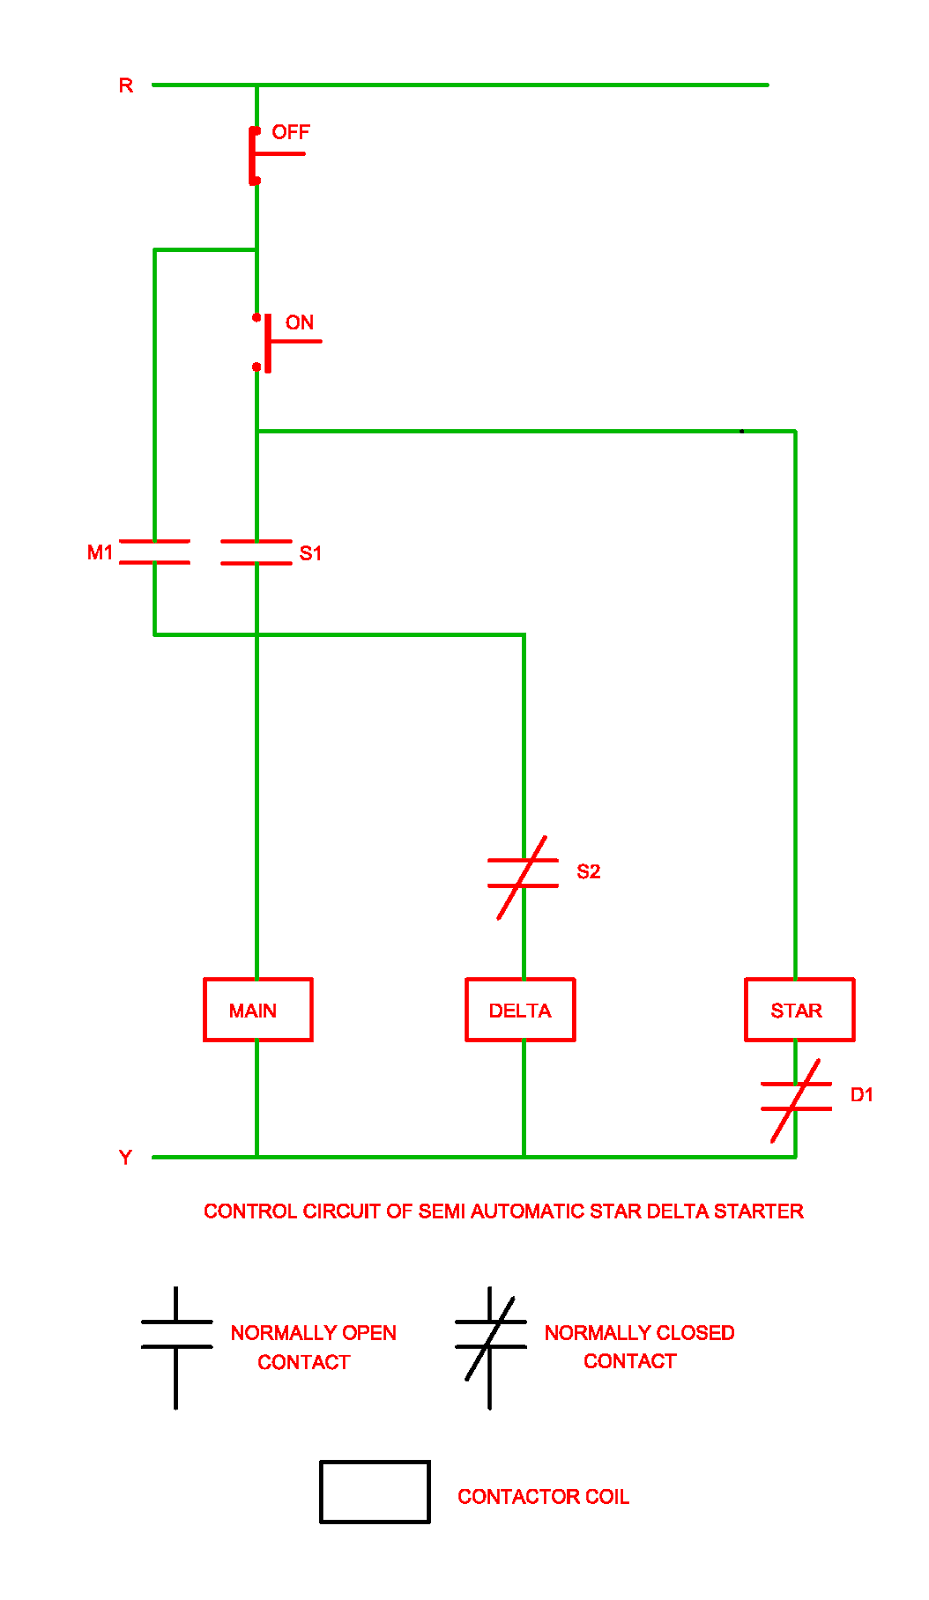 Control Circuit of Semi Automatic Star Delta Starter Electrical